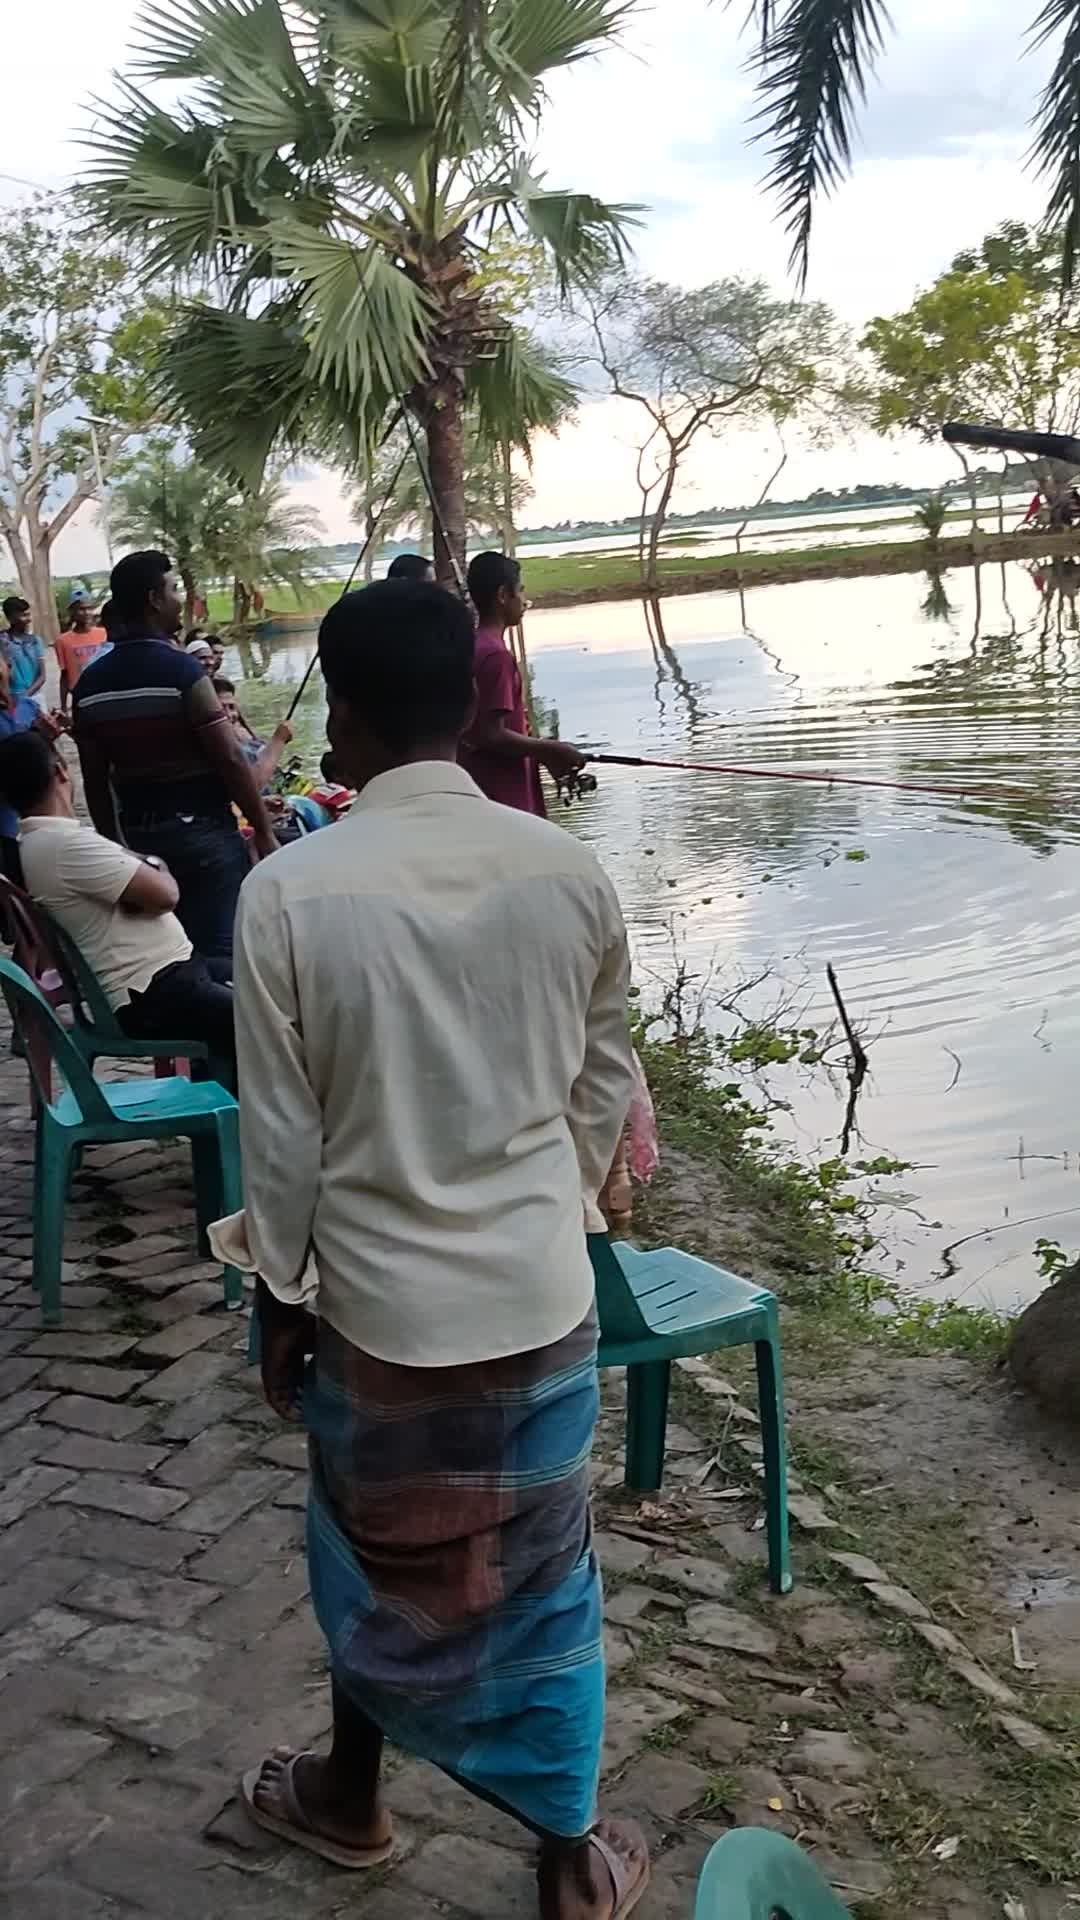 Fishing competitions, street hangouts, beautiful nature, Satkhira, Bangladesh